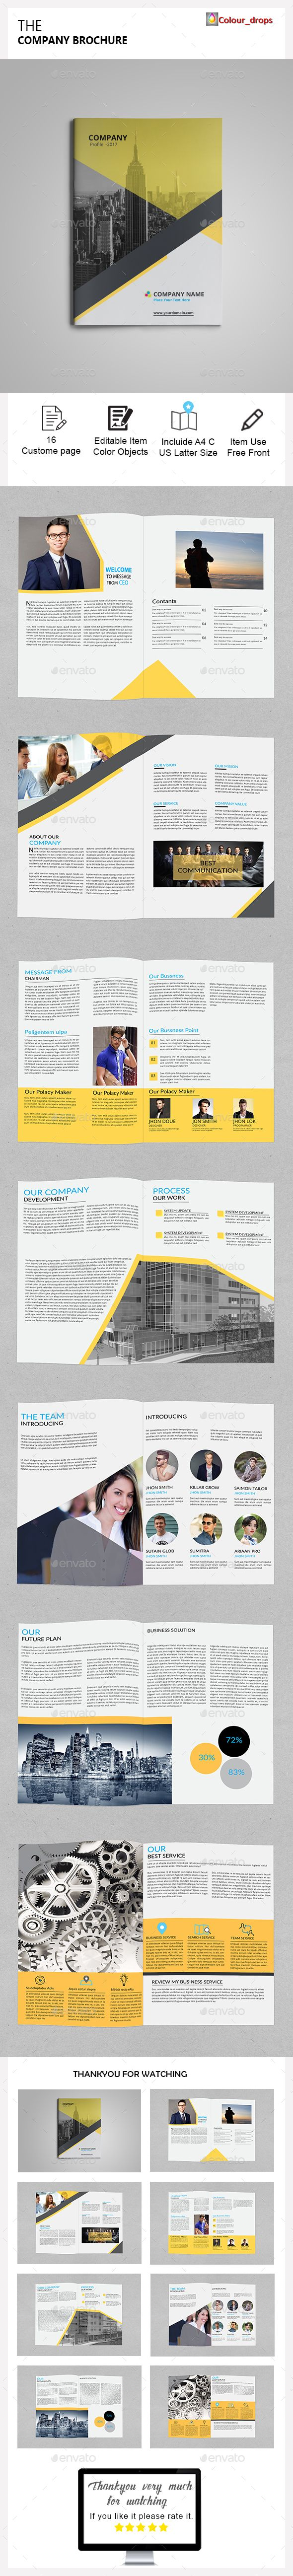 The Brochure Template InDesign INDD